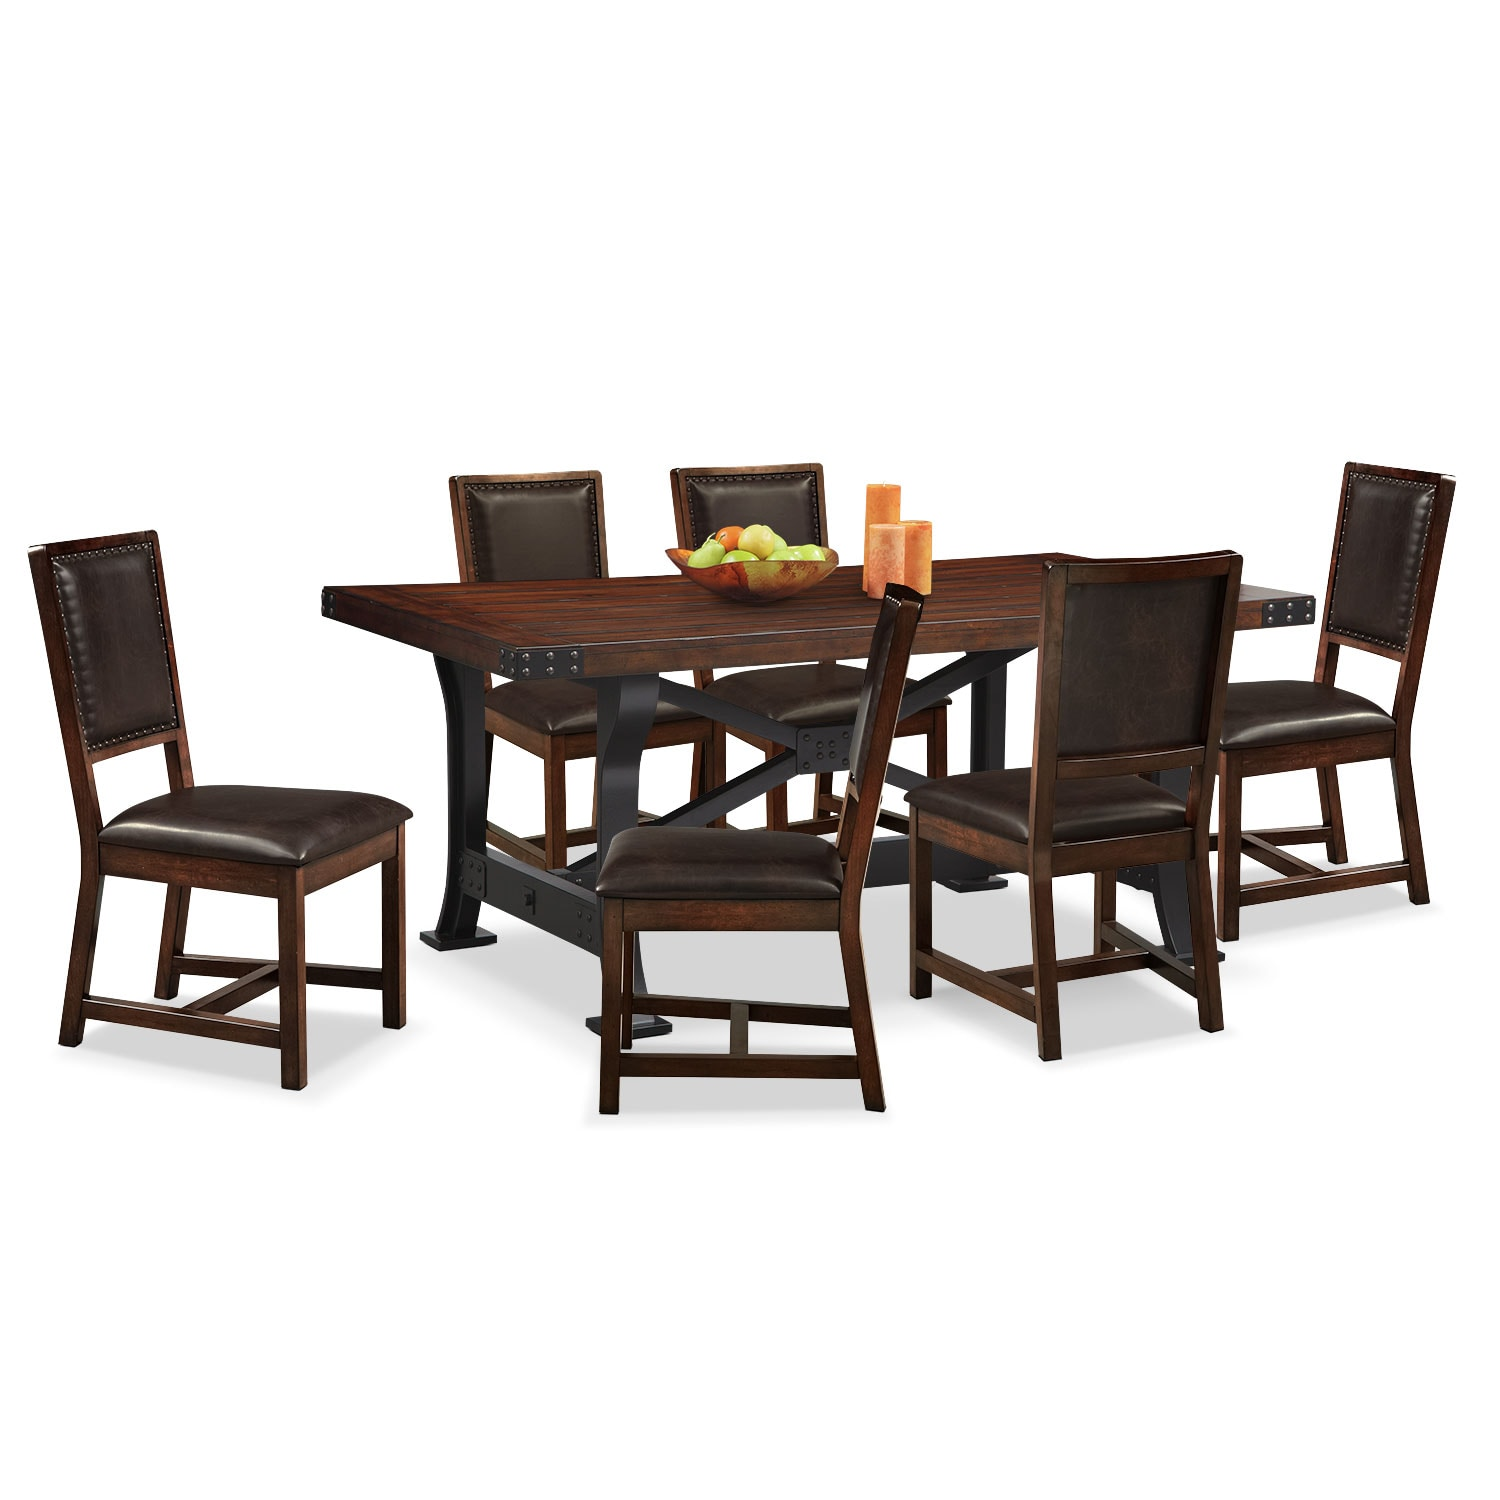 Newcastle table and chairs mahogany american